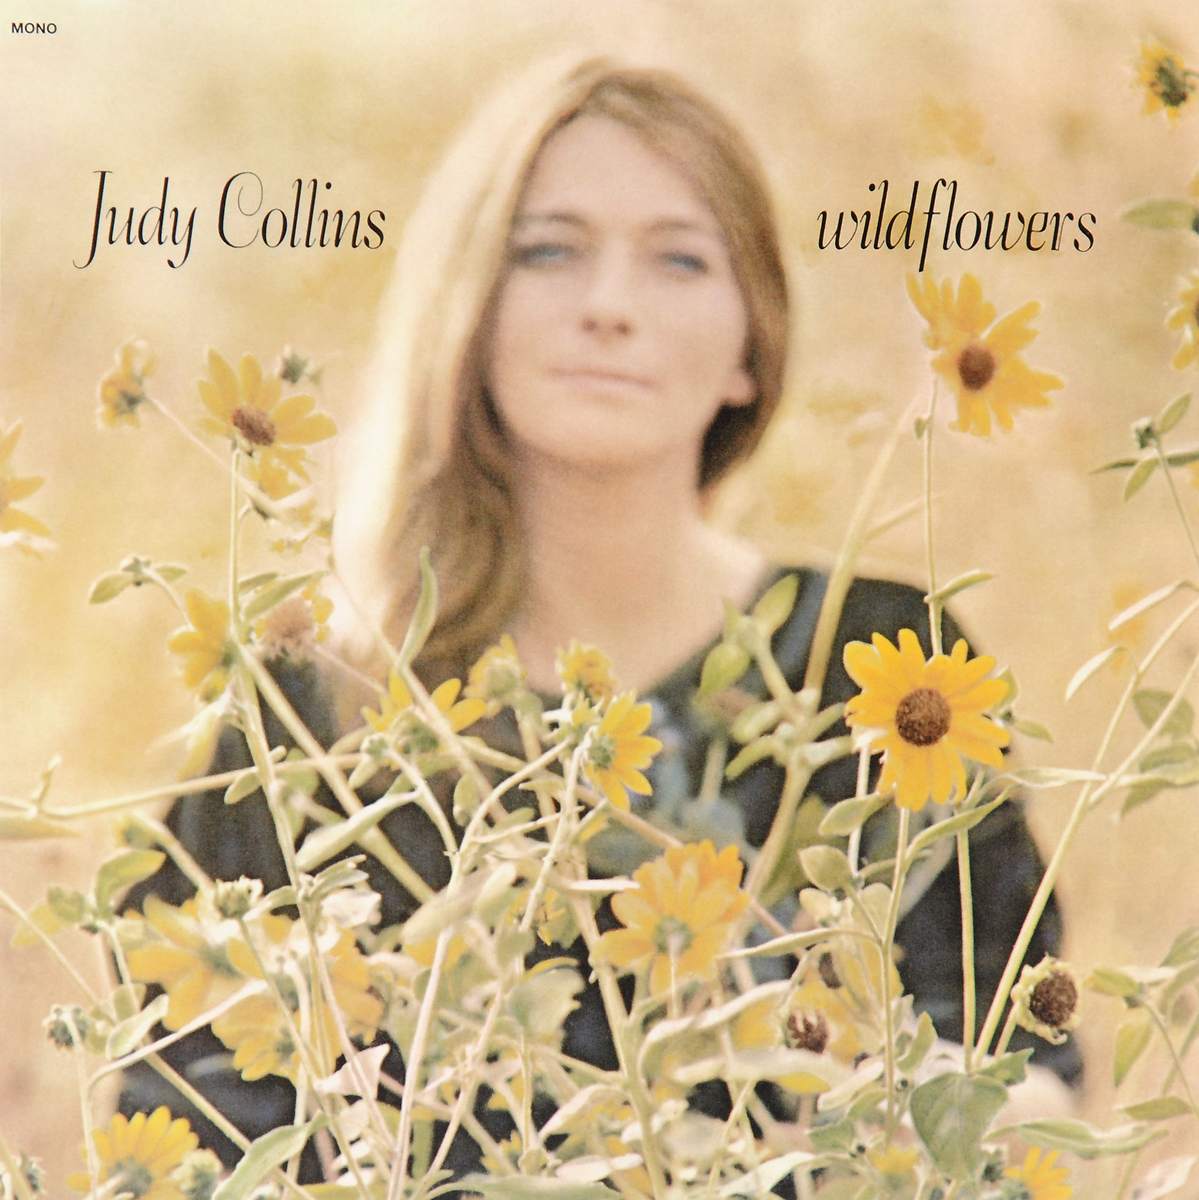 Judy Collins. Wildflowers. 50th Anniversary Edition (LP) scorpions – tokyo tapes 50th anniversary deluxe edition 2 lp 2 cd